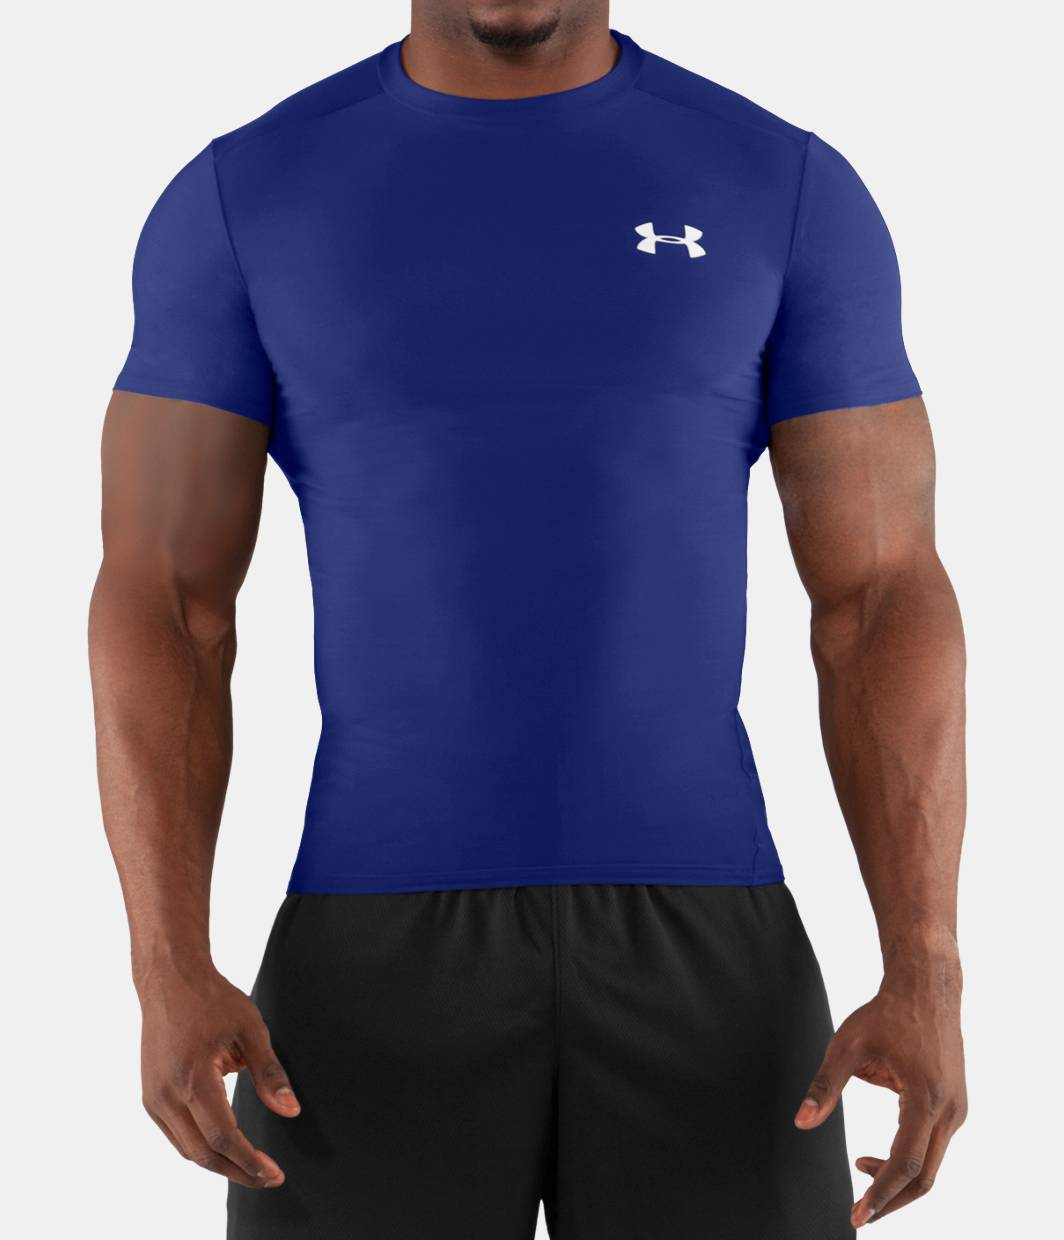 Men s heatgear compression short sleeve t shirt under for Under armour i will shirt